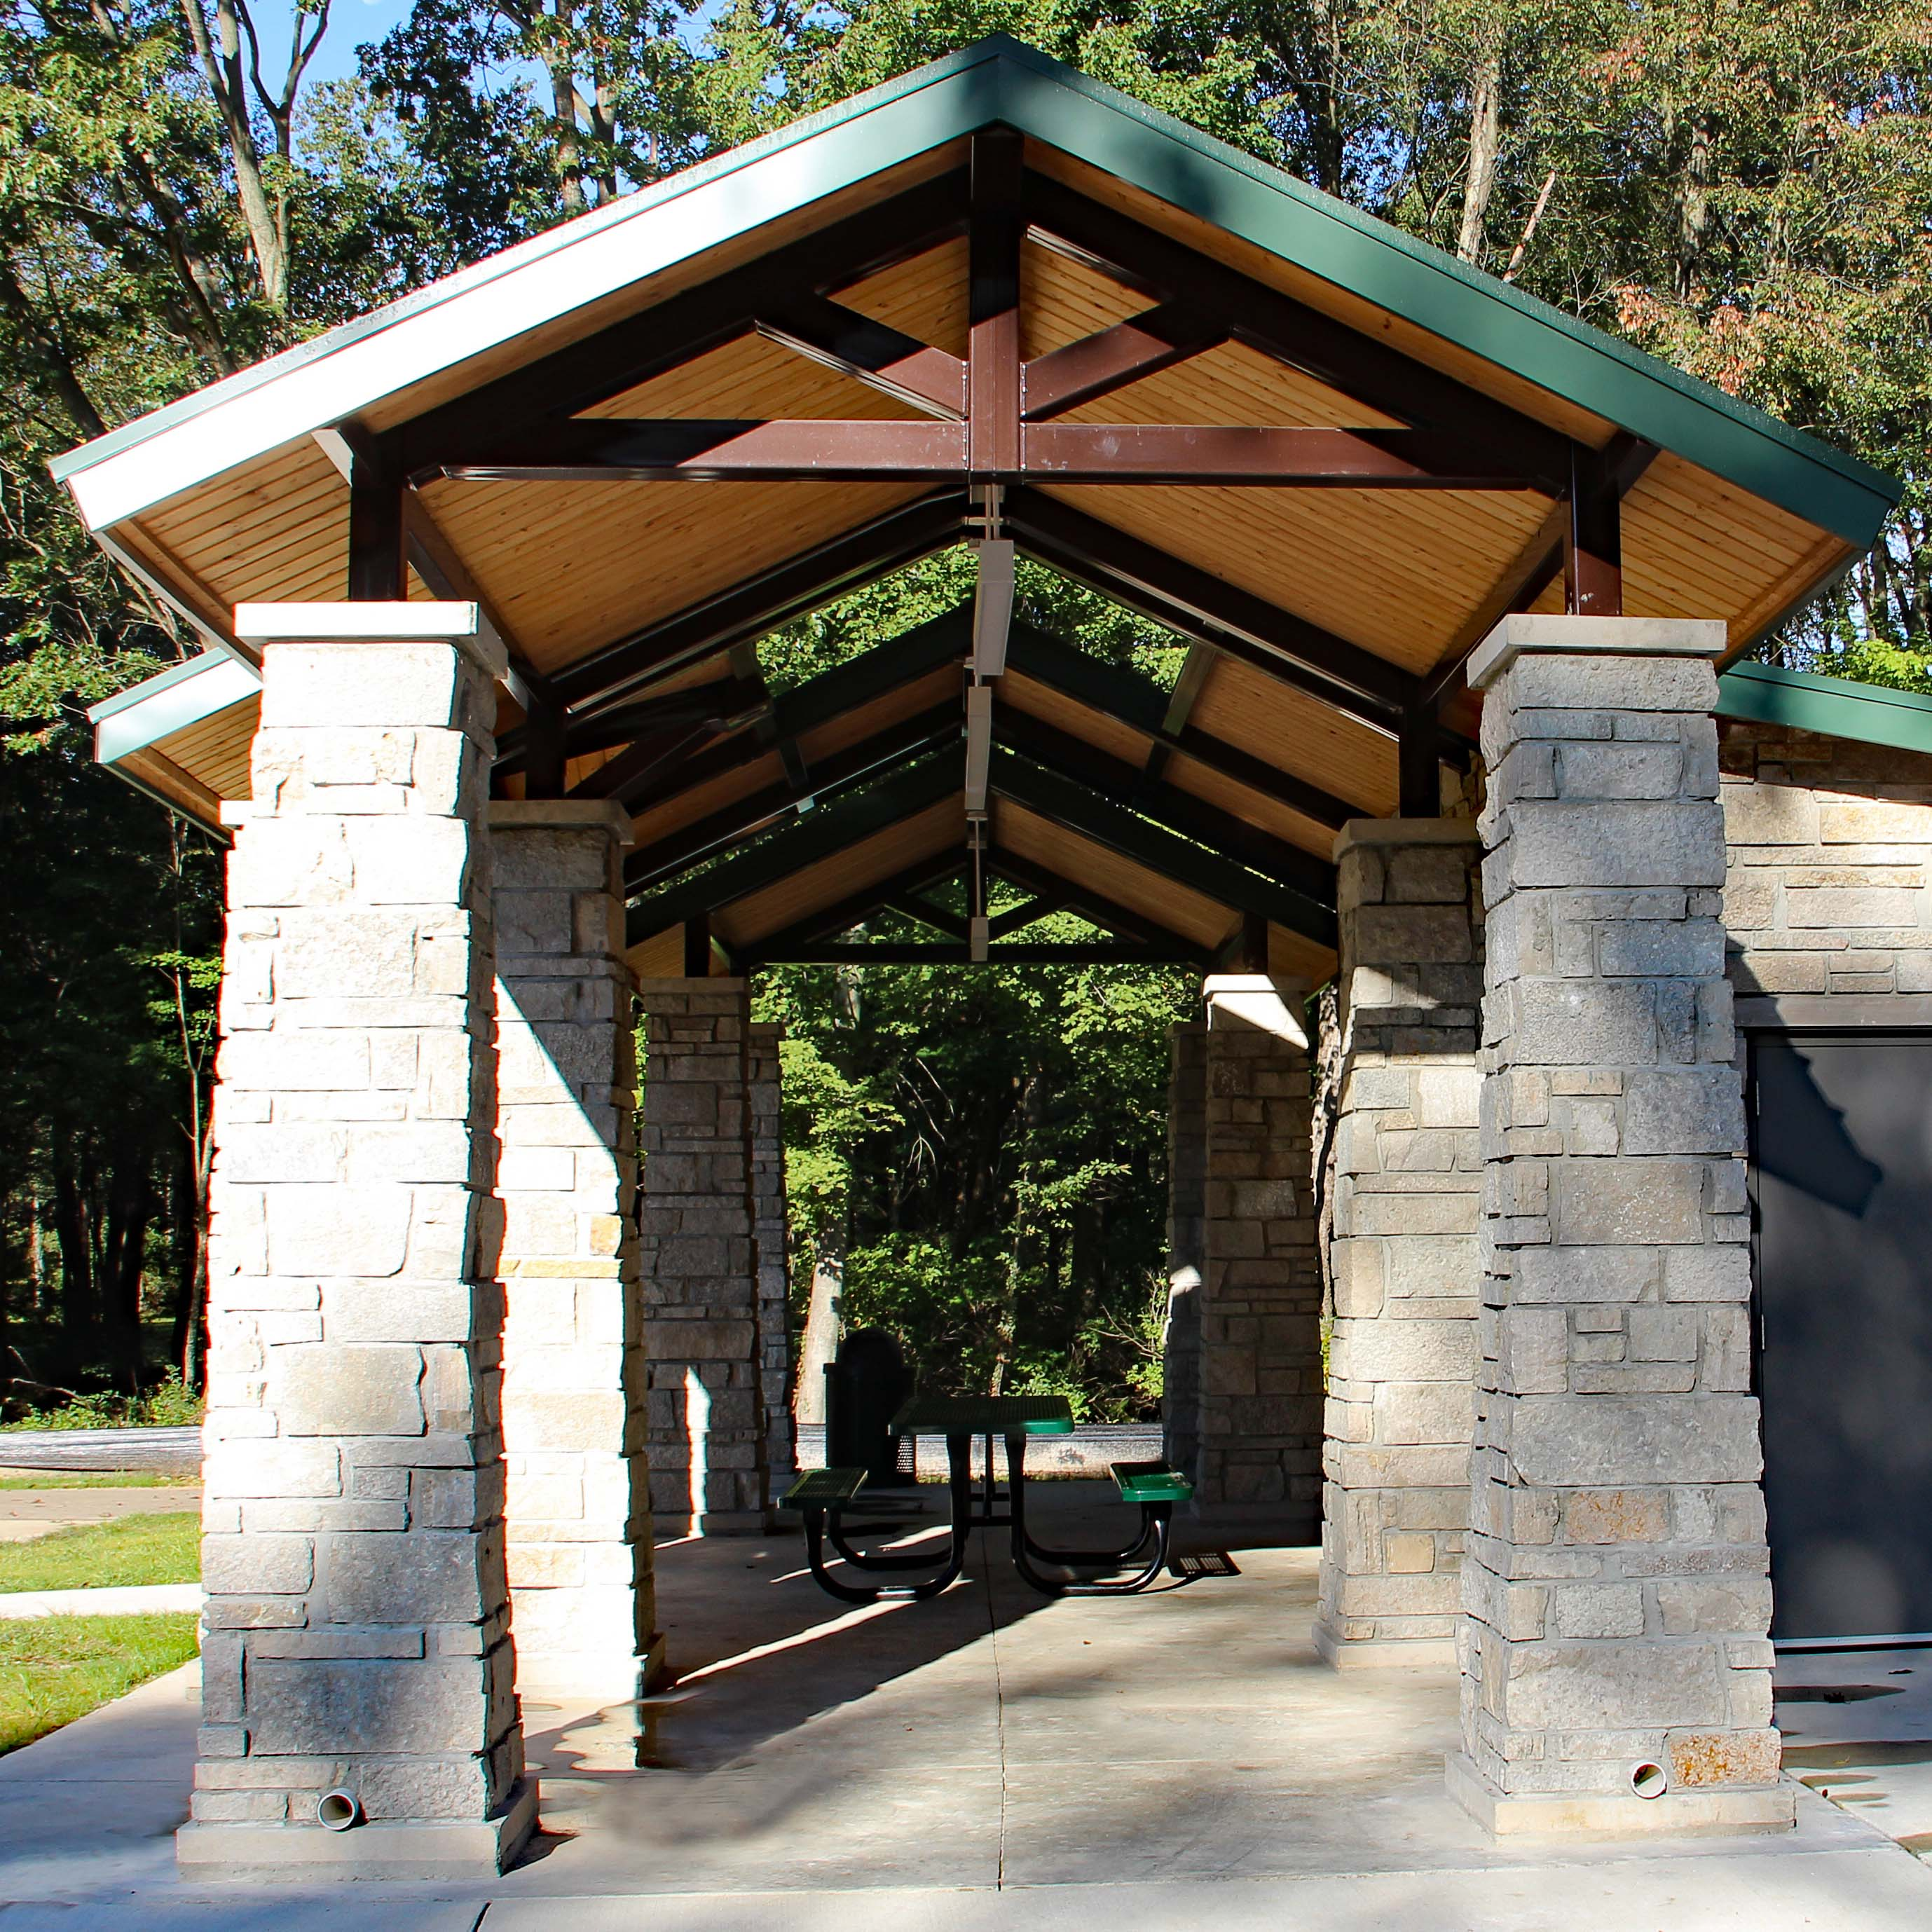 Portage Celery Flats Trailhead Square Inside Structure View